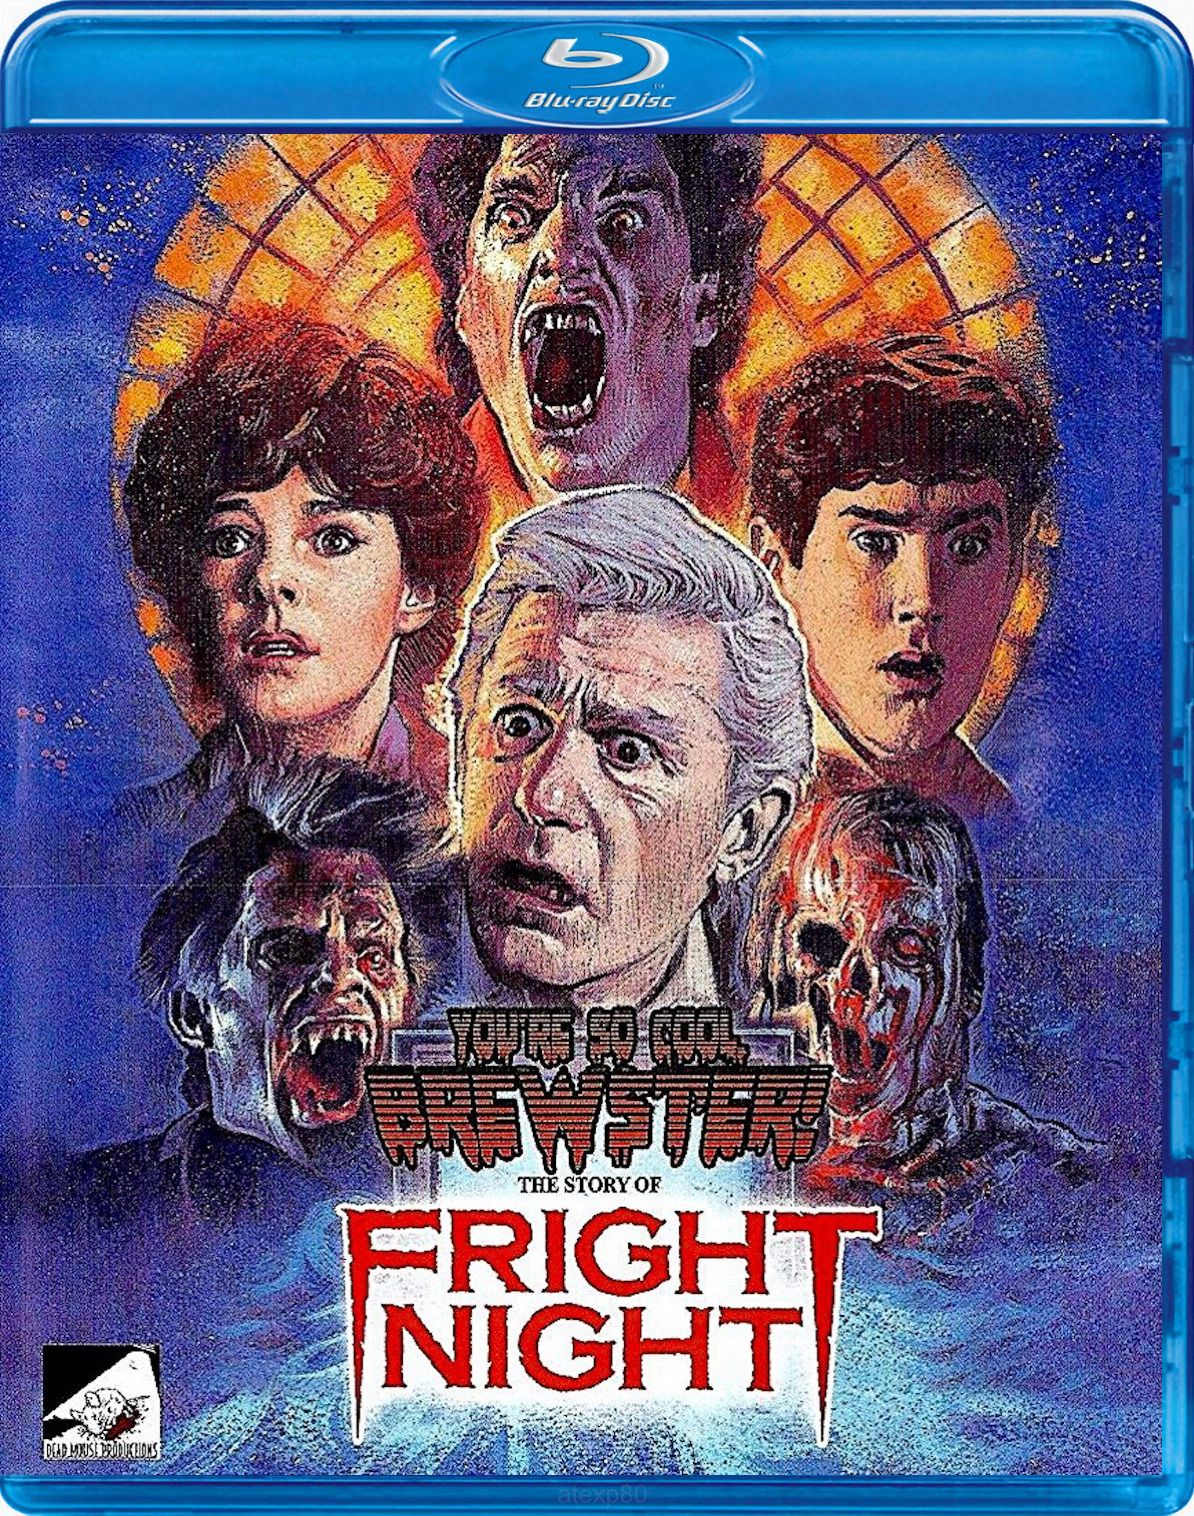 You Re So Cool Brewster The Story Of Fright Night Blu Ray Dead